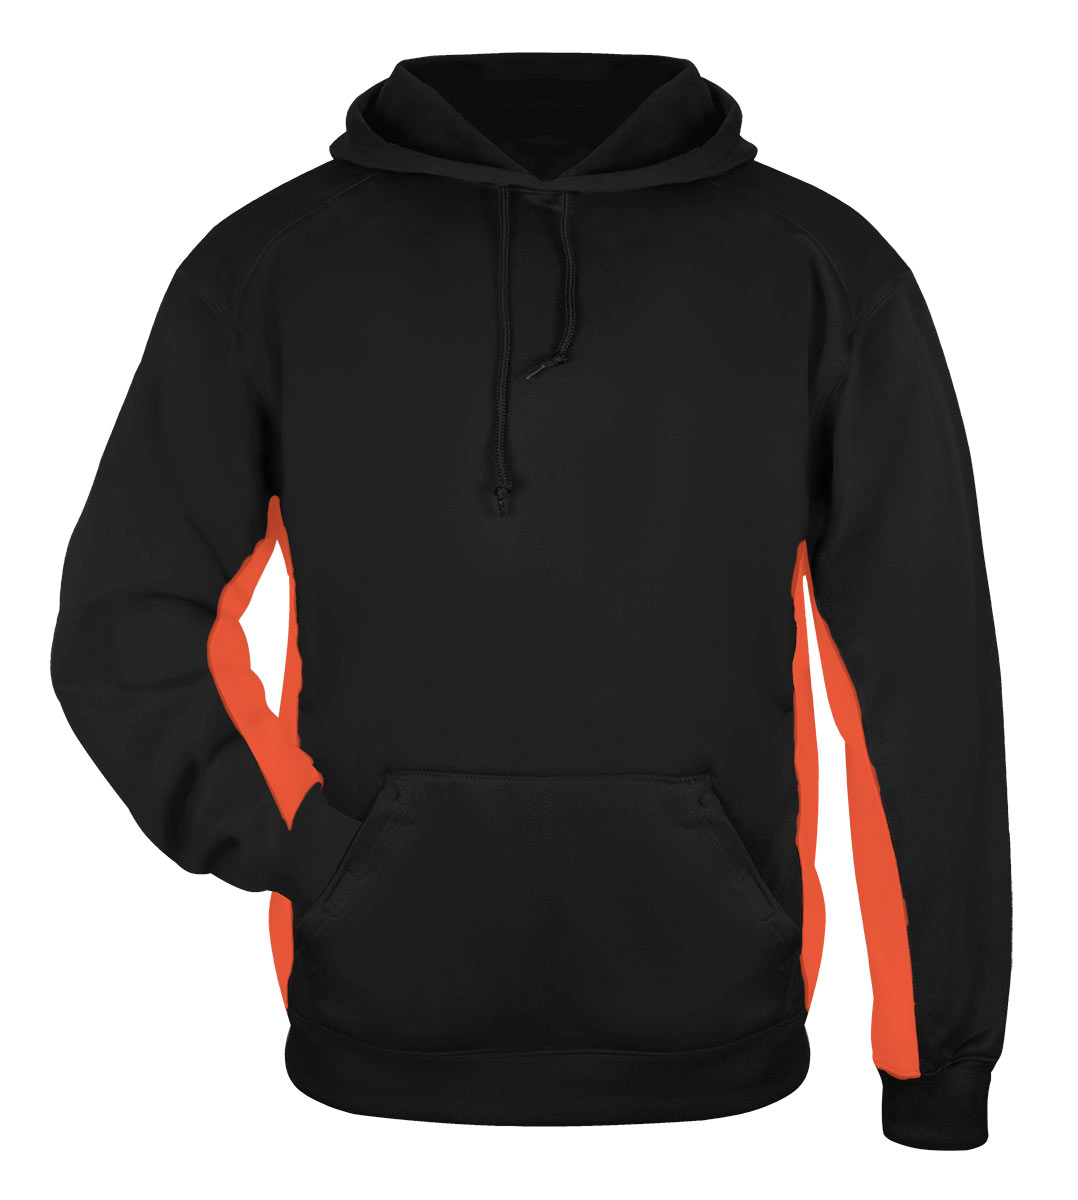 Badger Mens Performance Fleece Hooded Sweatshirt